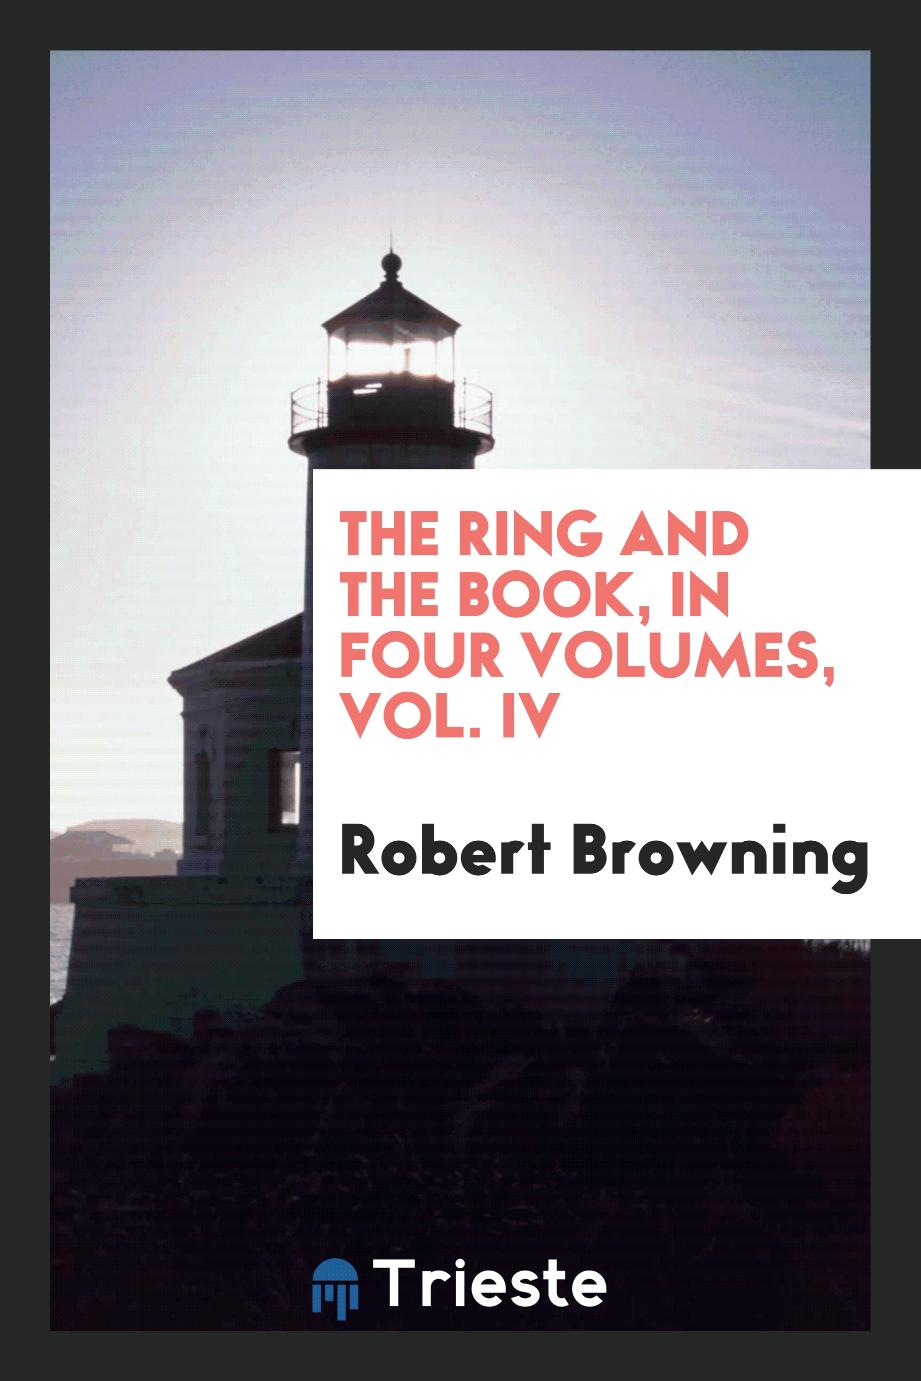 The ring and the book, in four volumes, Vol. IV